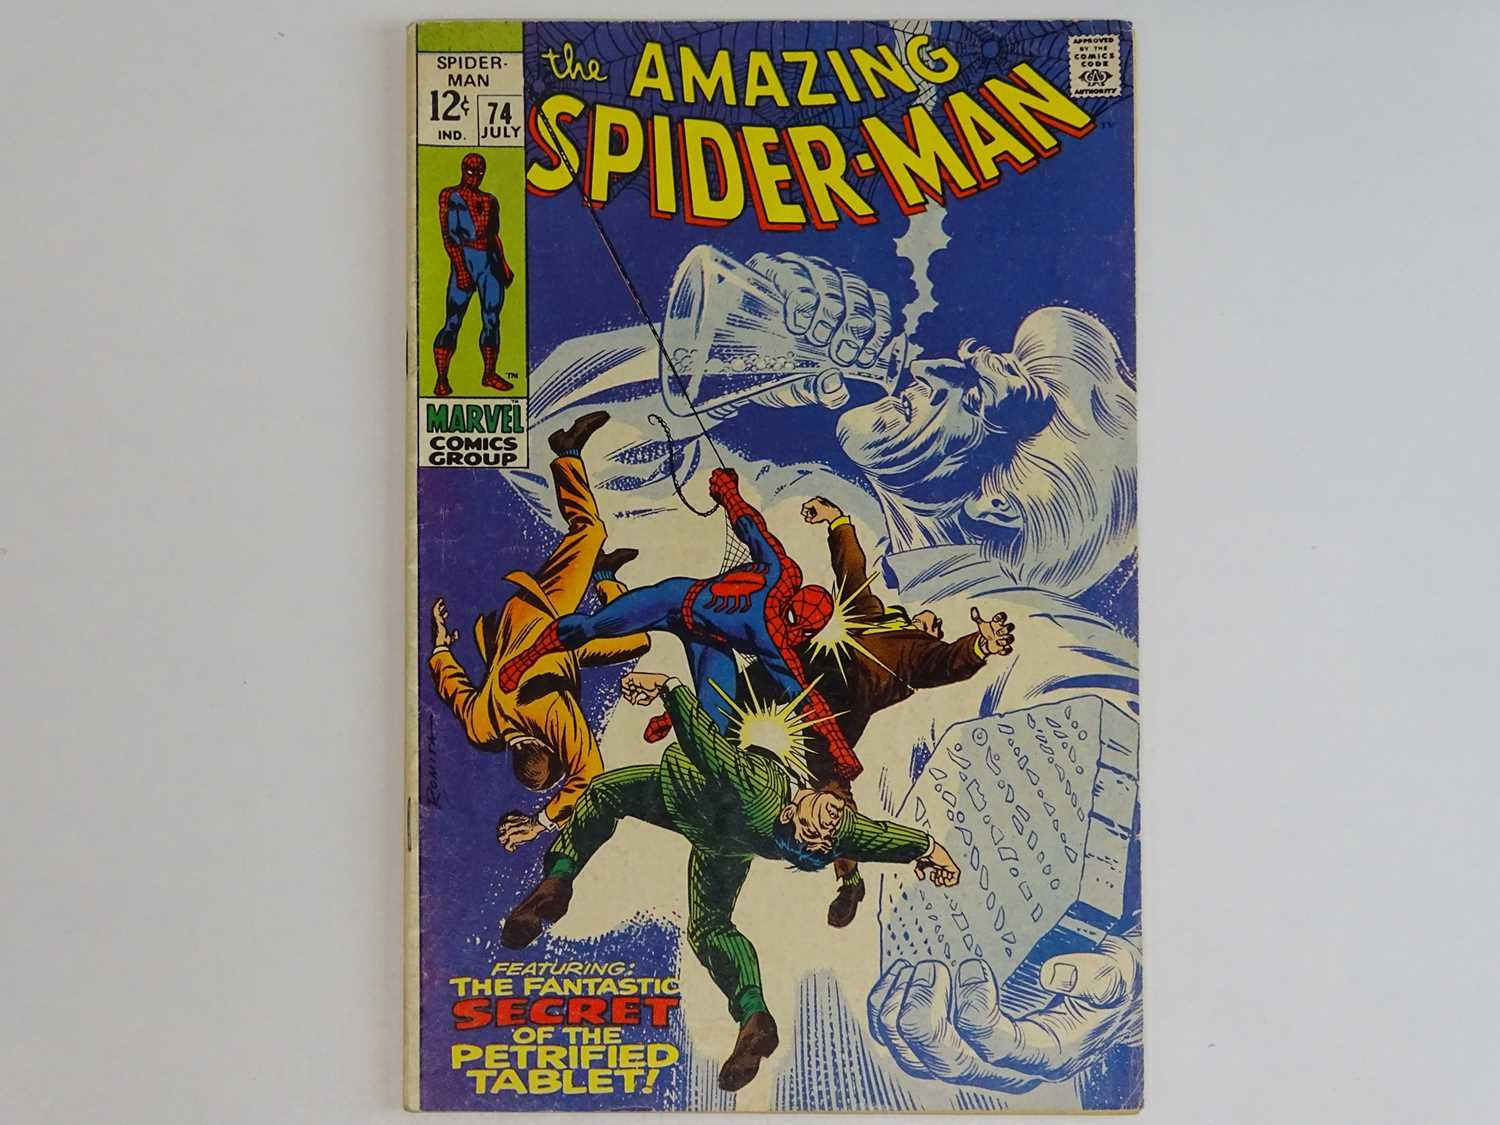 AMAZING SPIDER-MAN #74 - (1969 - MARVEL) - Spider-Man and Dr. Curt Connors (Lizard) battle